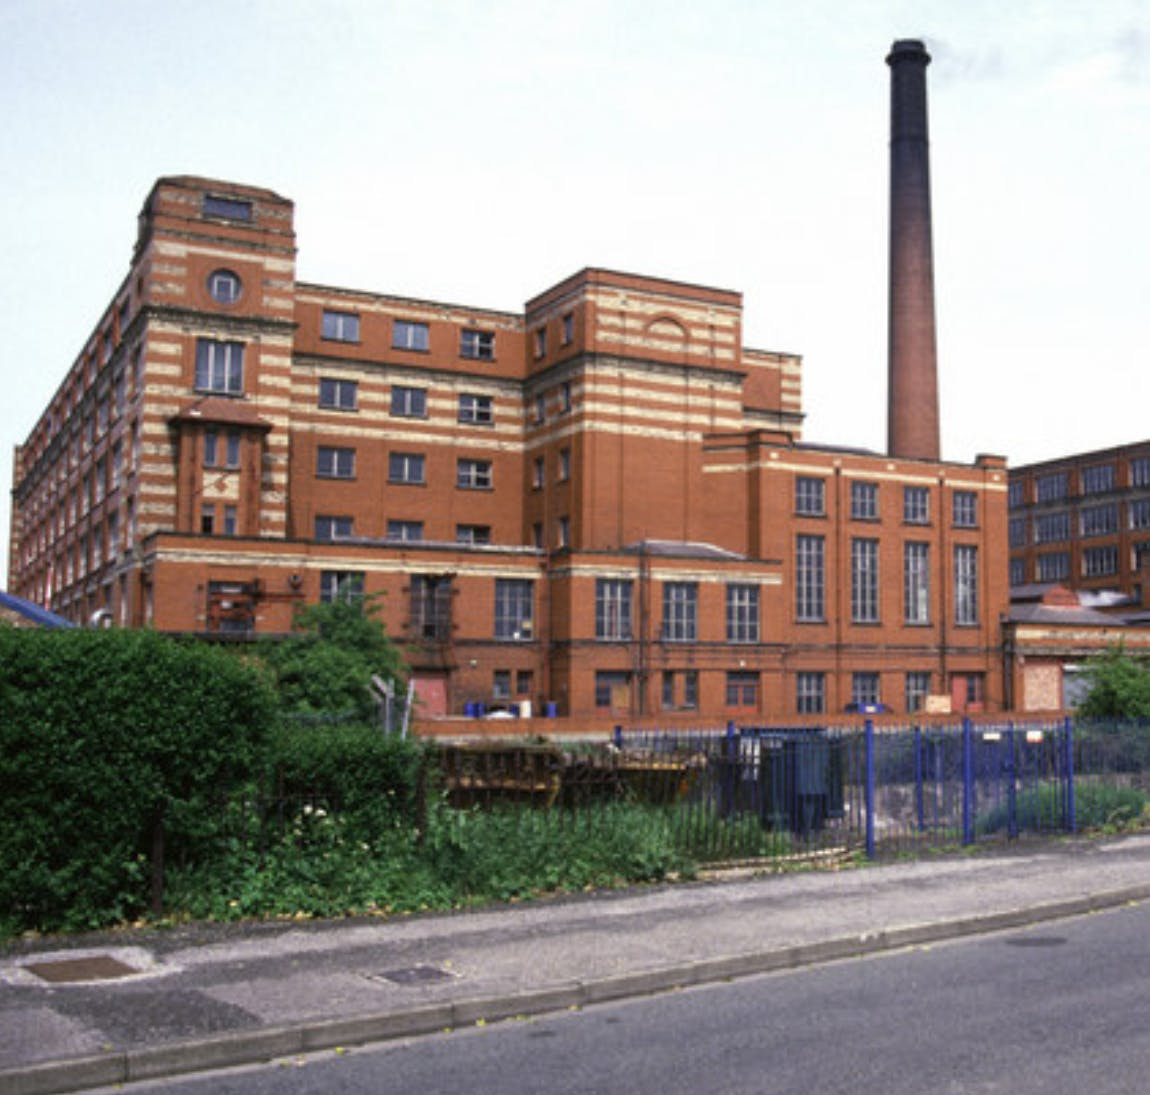 GHOST HUNT AT THE SPINNERS MILL IN LEIGH WIGAN